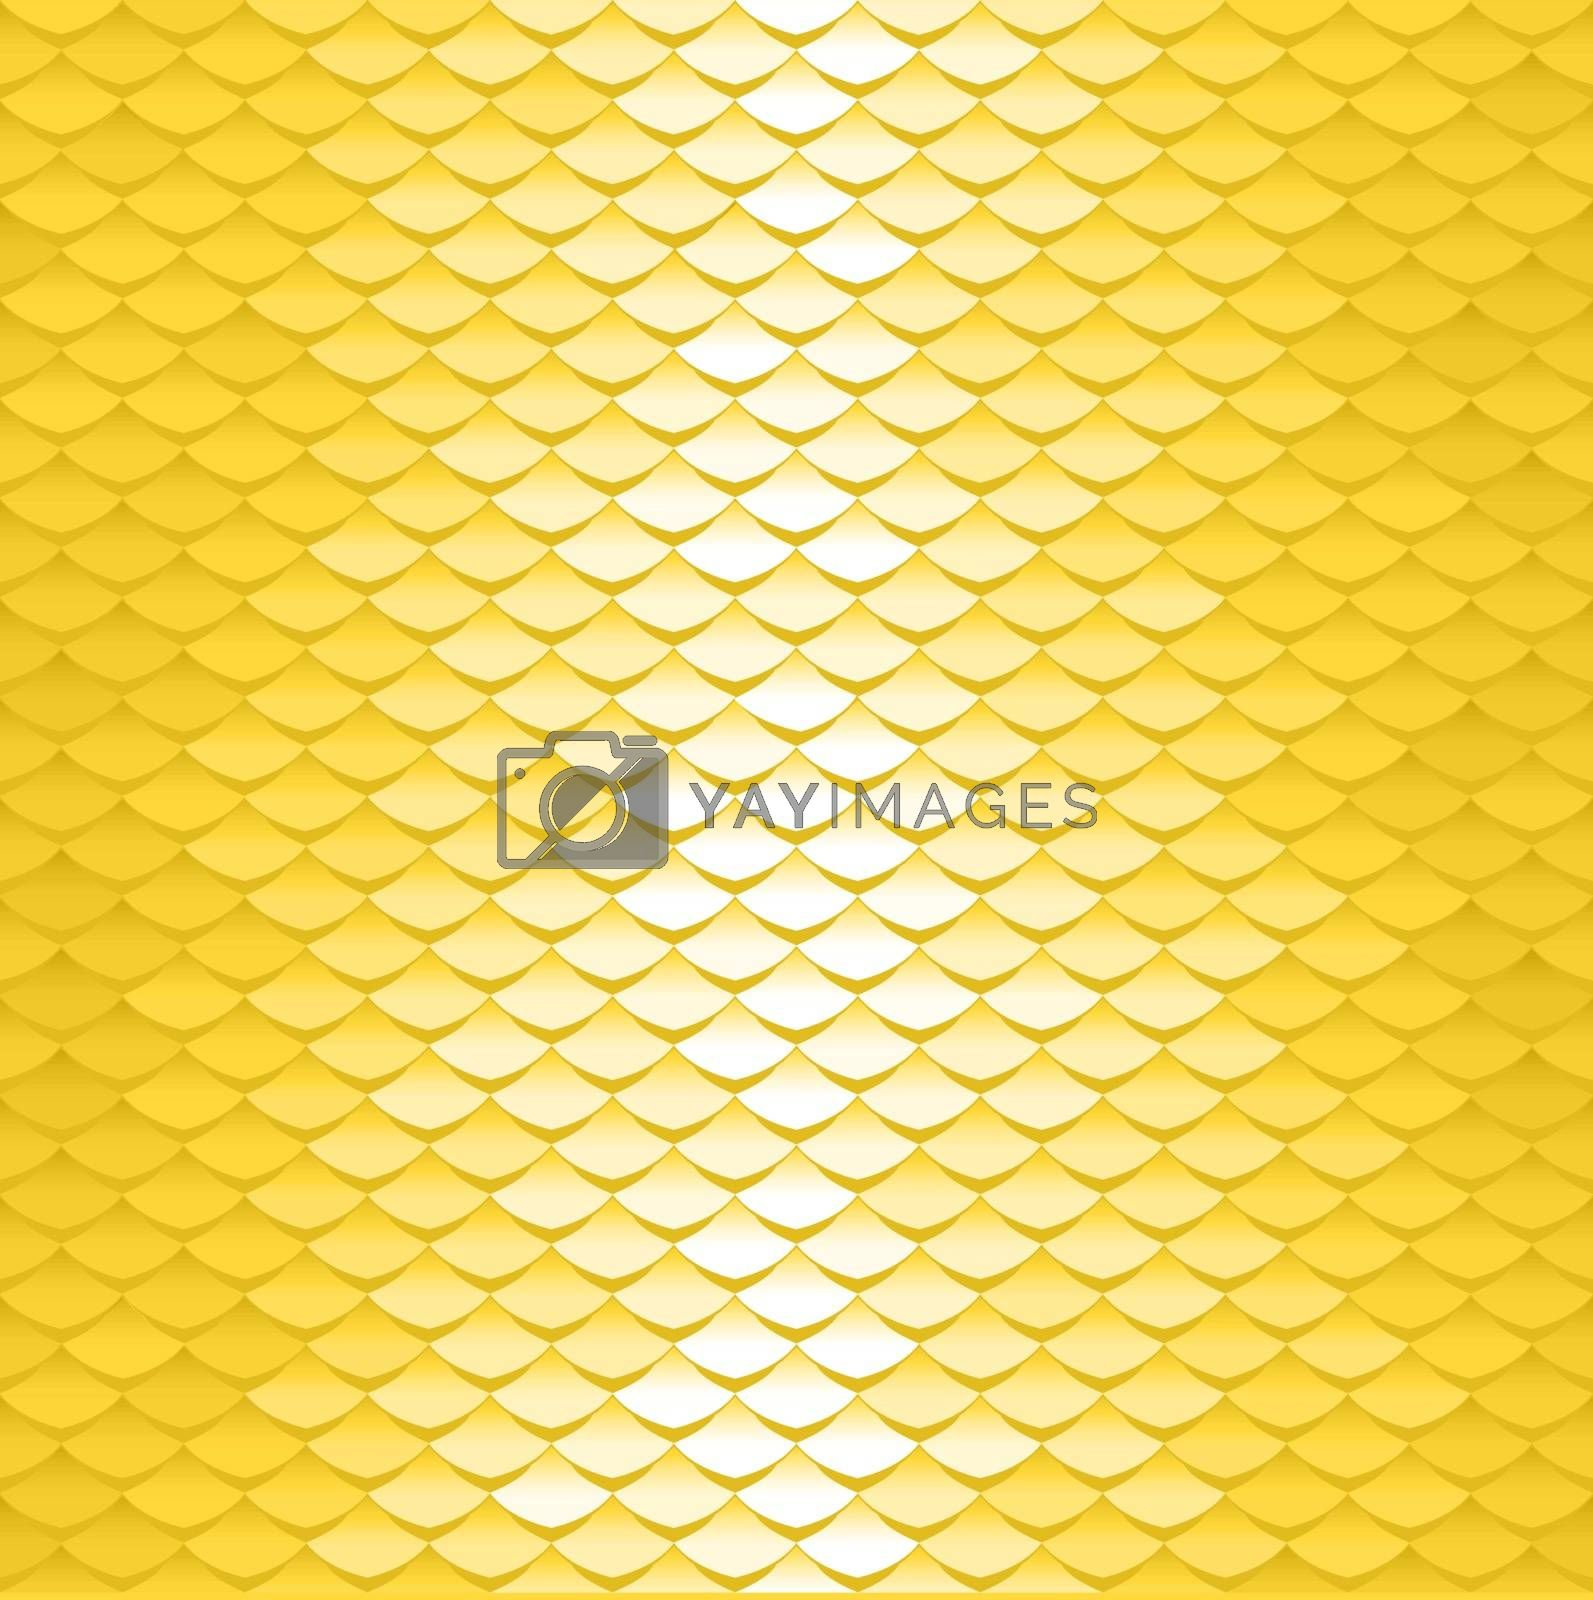 Seamless scale pattern. Abstract roof tiles background. Yellow squama texture.